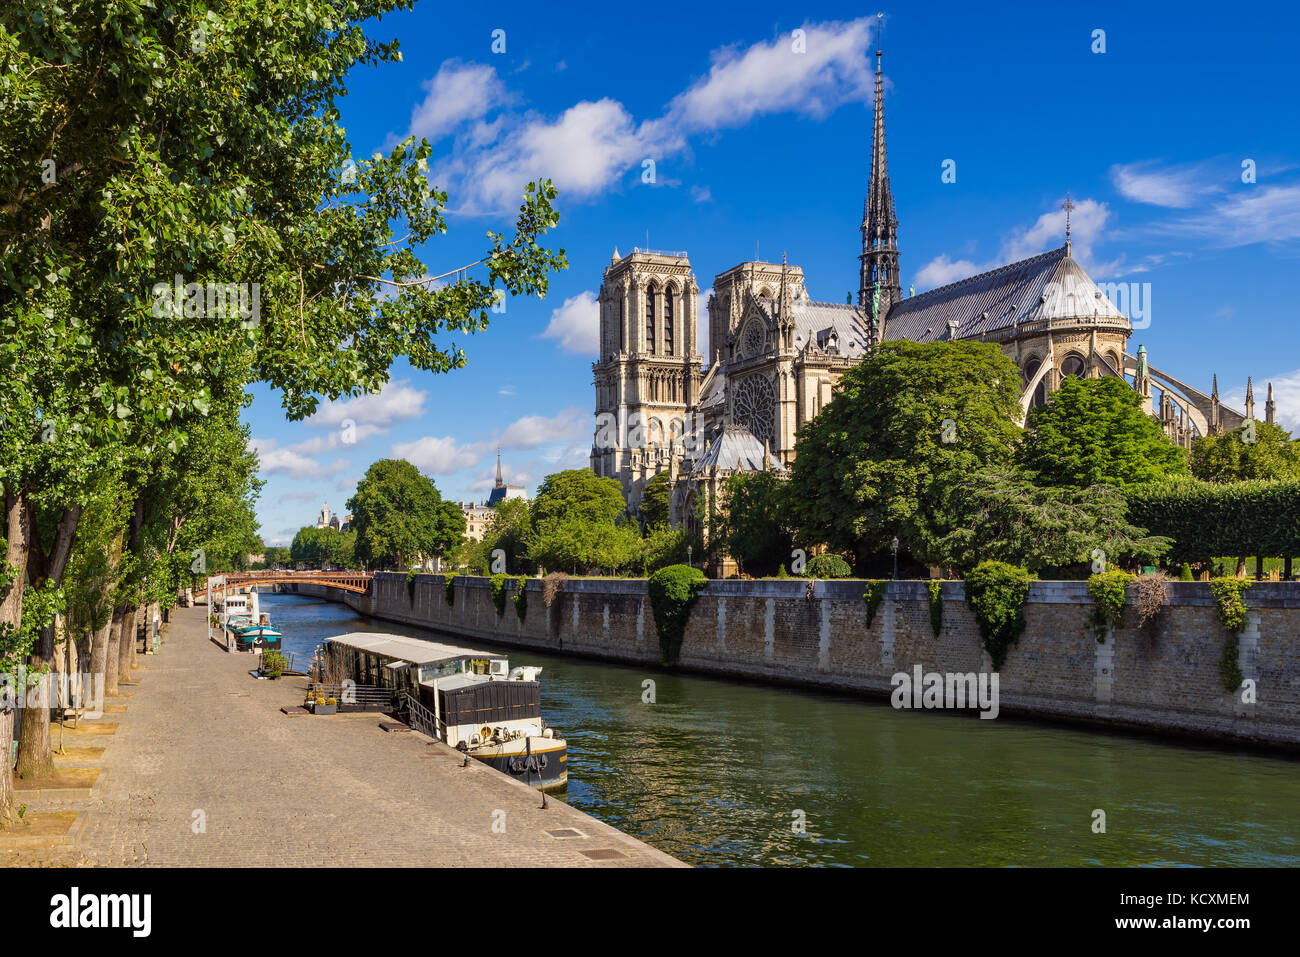 Notre Dame de Paris cathedral with the Seine River in Summer. Paris, France - Stock Image